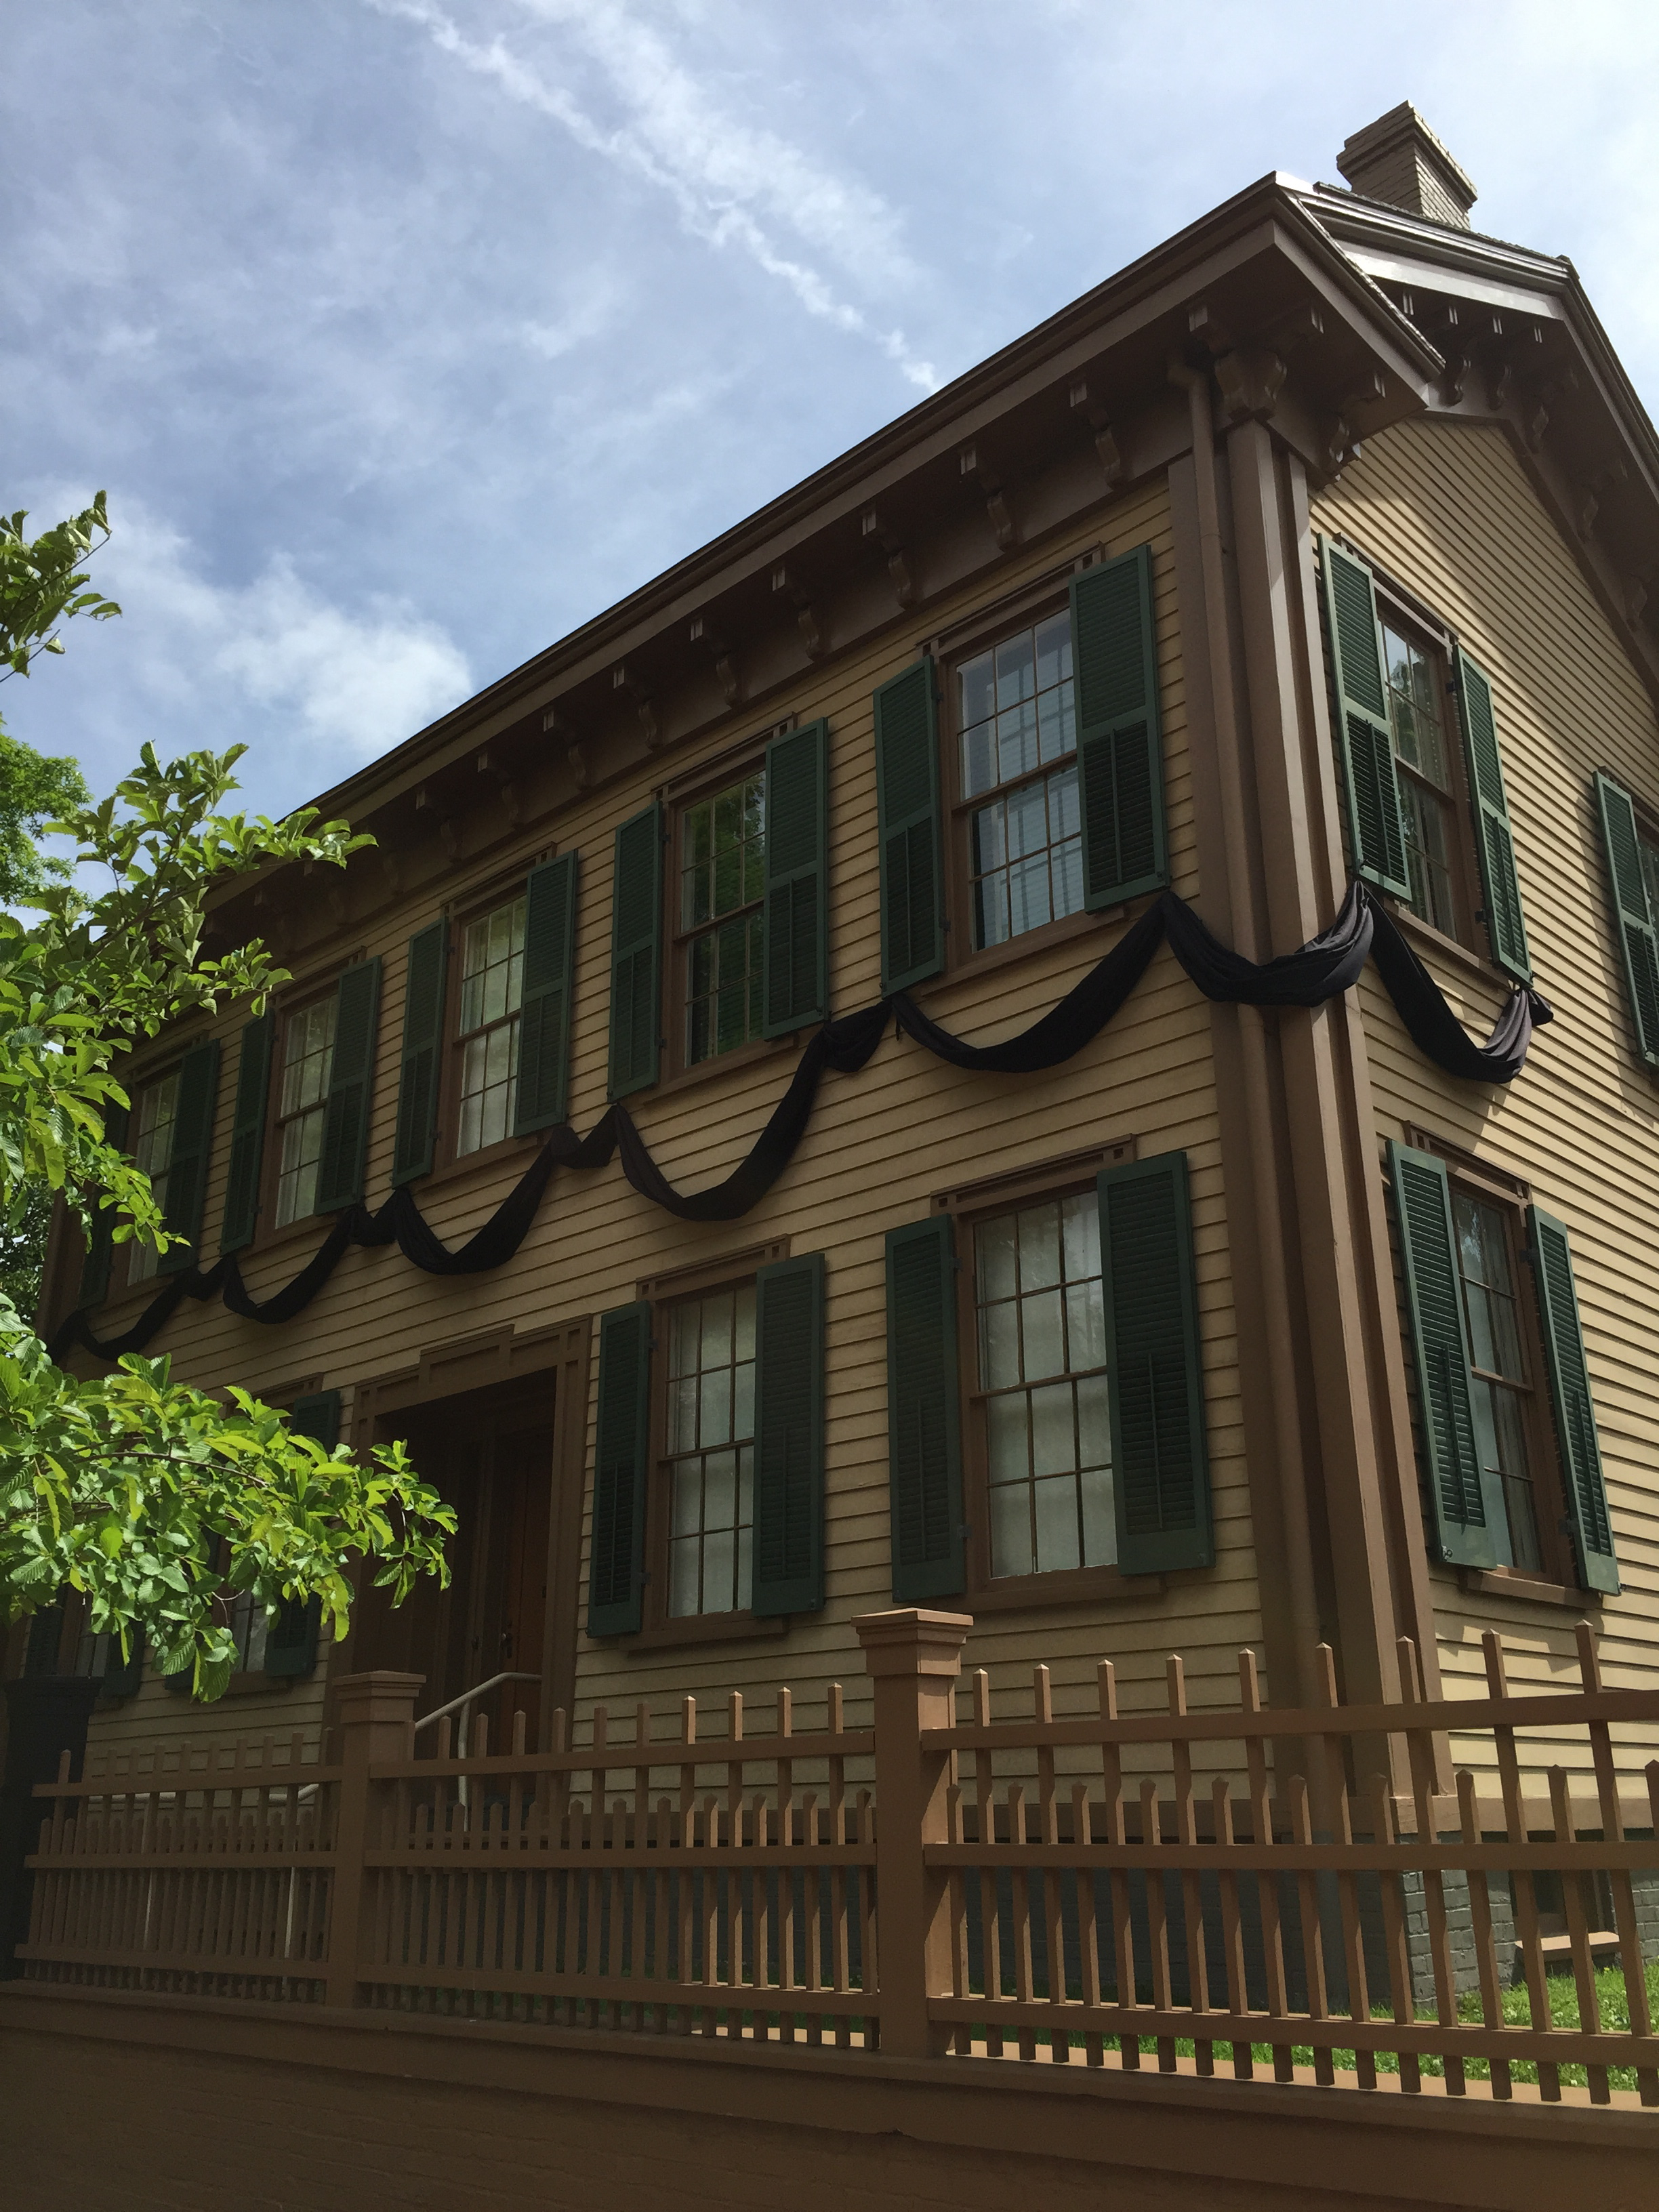 Two-story brown home with green shutters